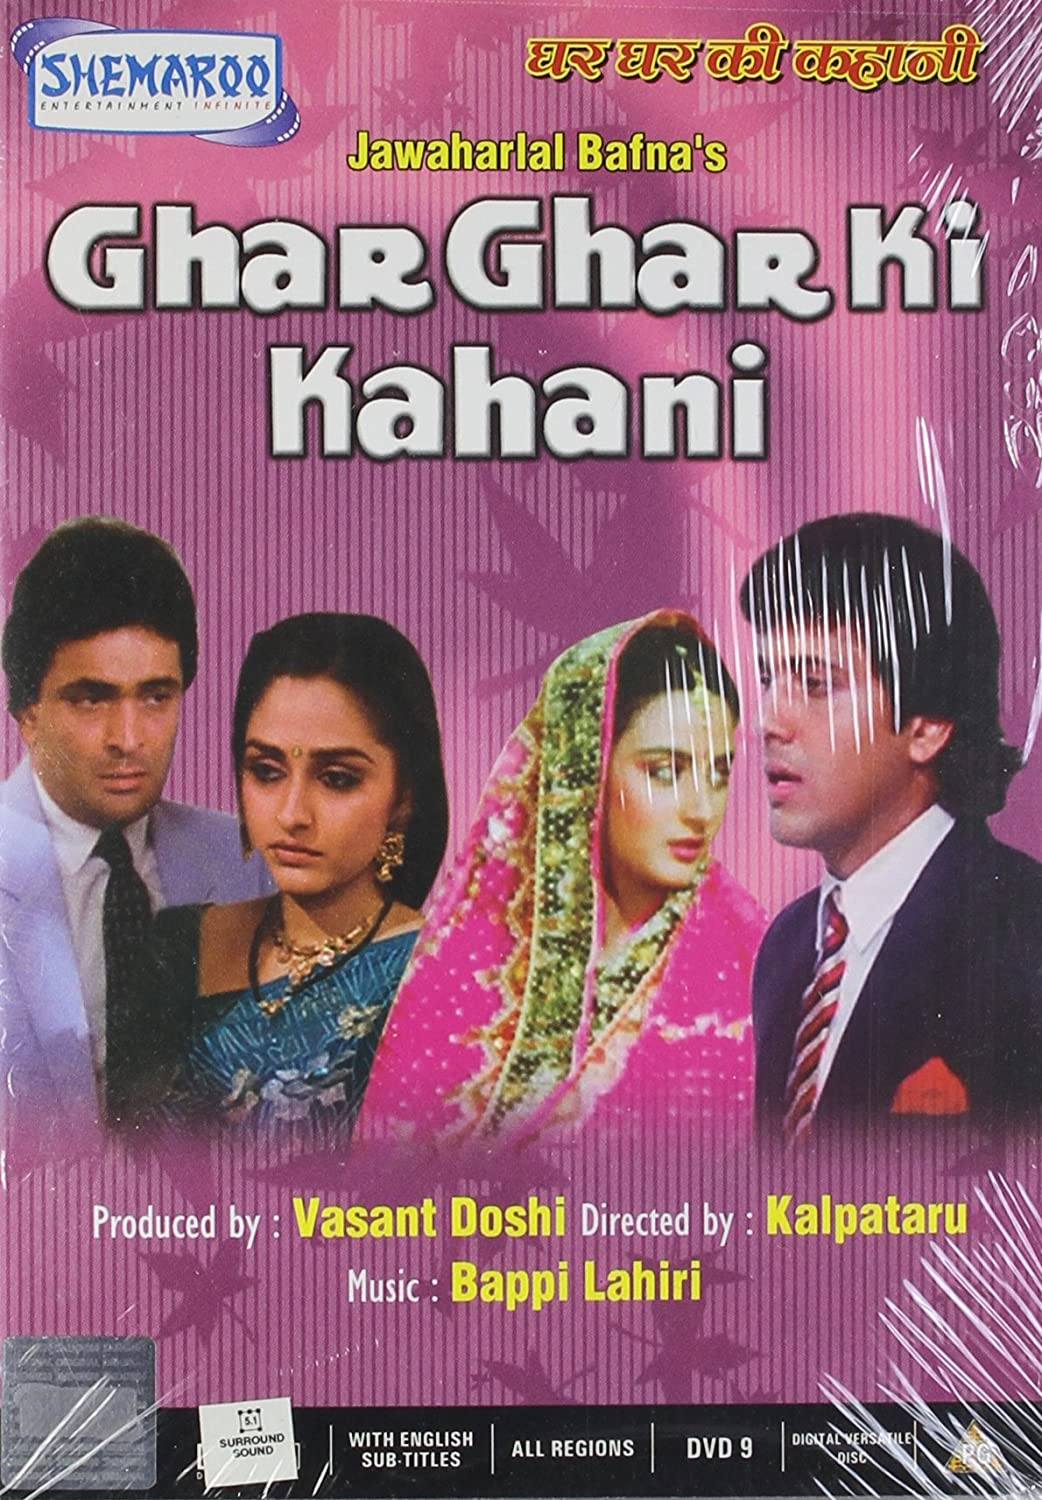 Amazon.com: Ghar Ghar Ki Kahani (Brand New Single Disc Dvd, Hindi Language,  With English Subtitles, Released By Shemaroo): Govinda, Rishi Kapoor, ...